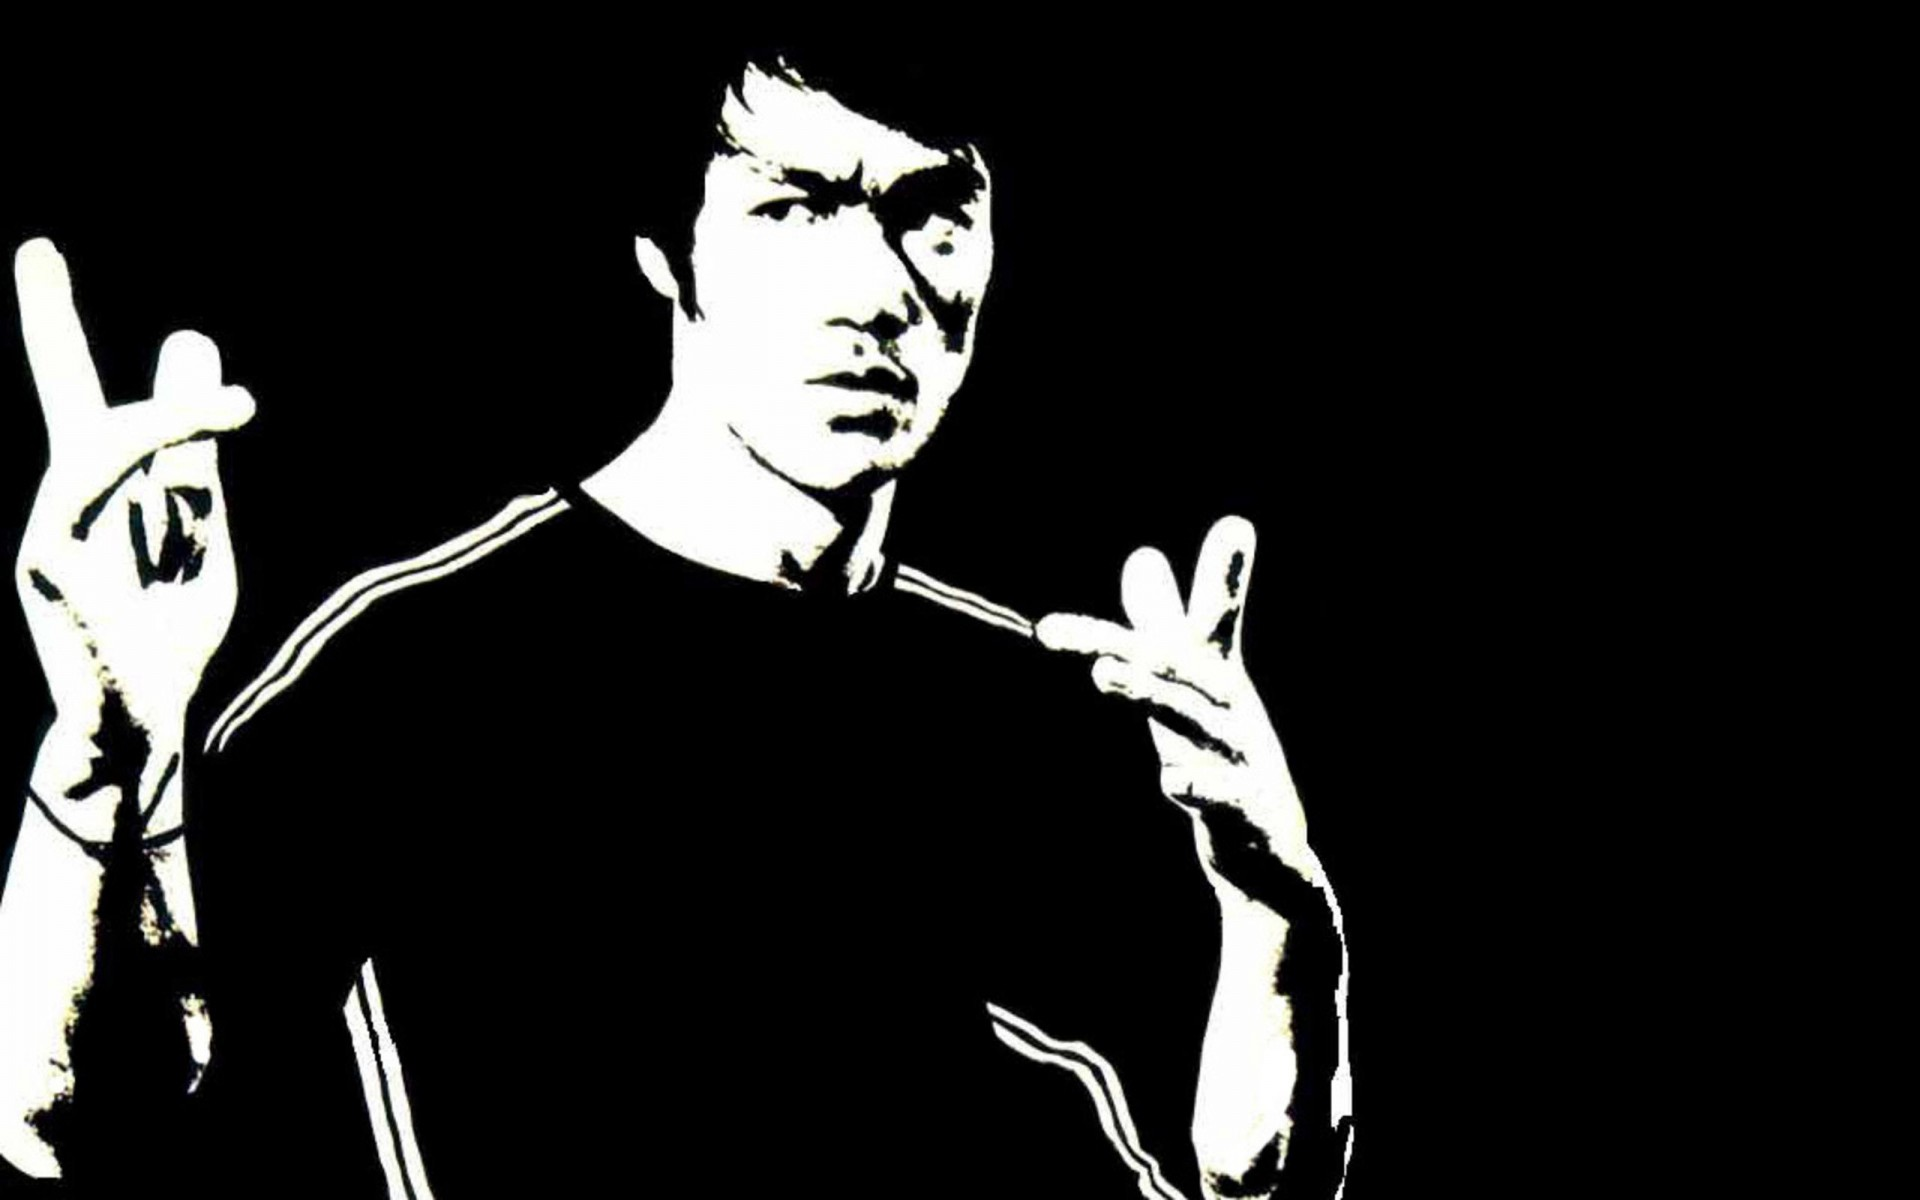 1920x1200 - Bruce Lee Wallpapers 2